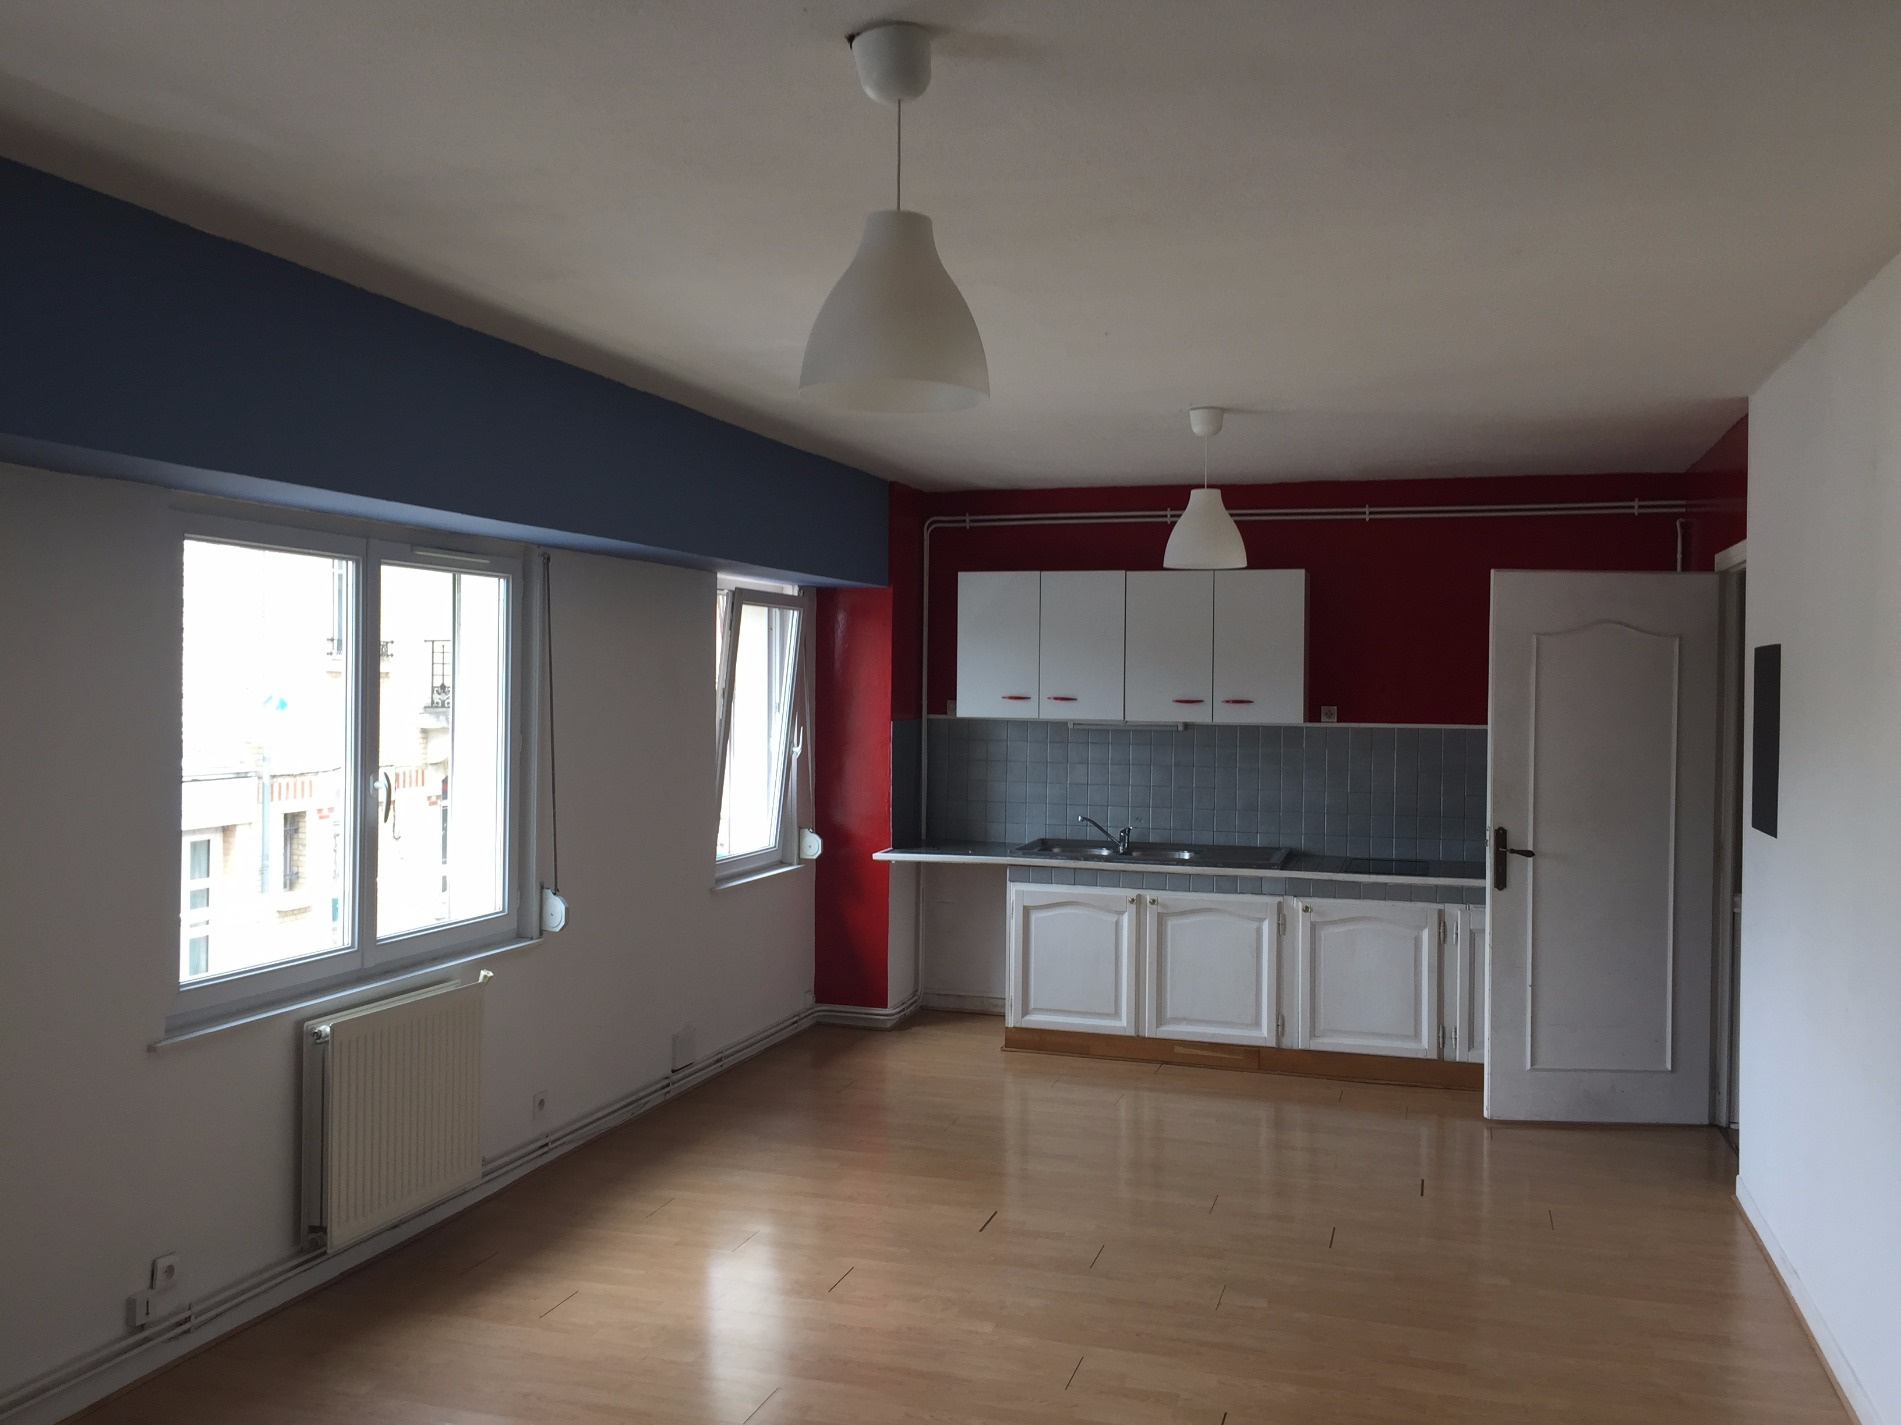 Annonce location appartement rethel 08300 90 m 635 for 08300 rethel